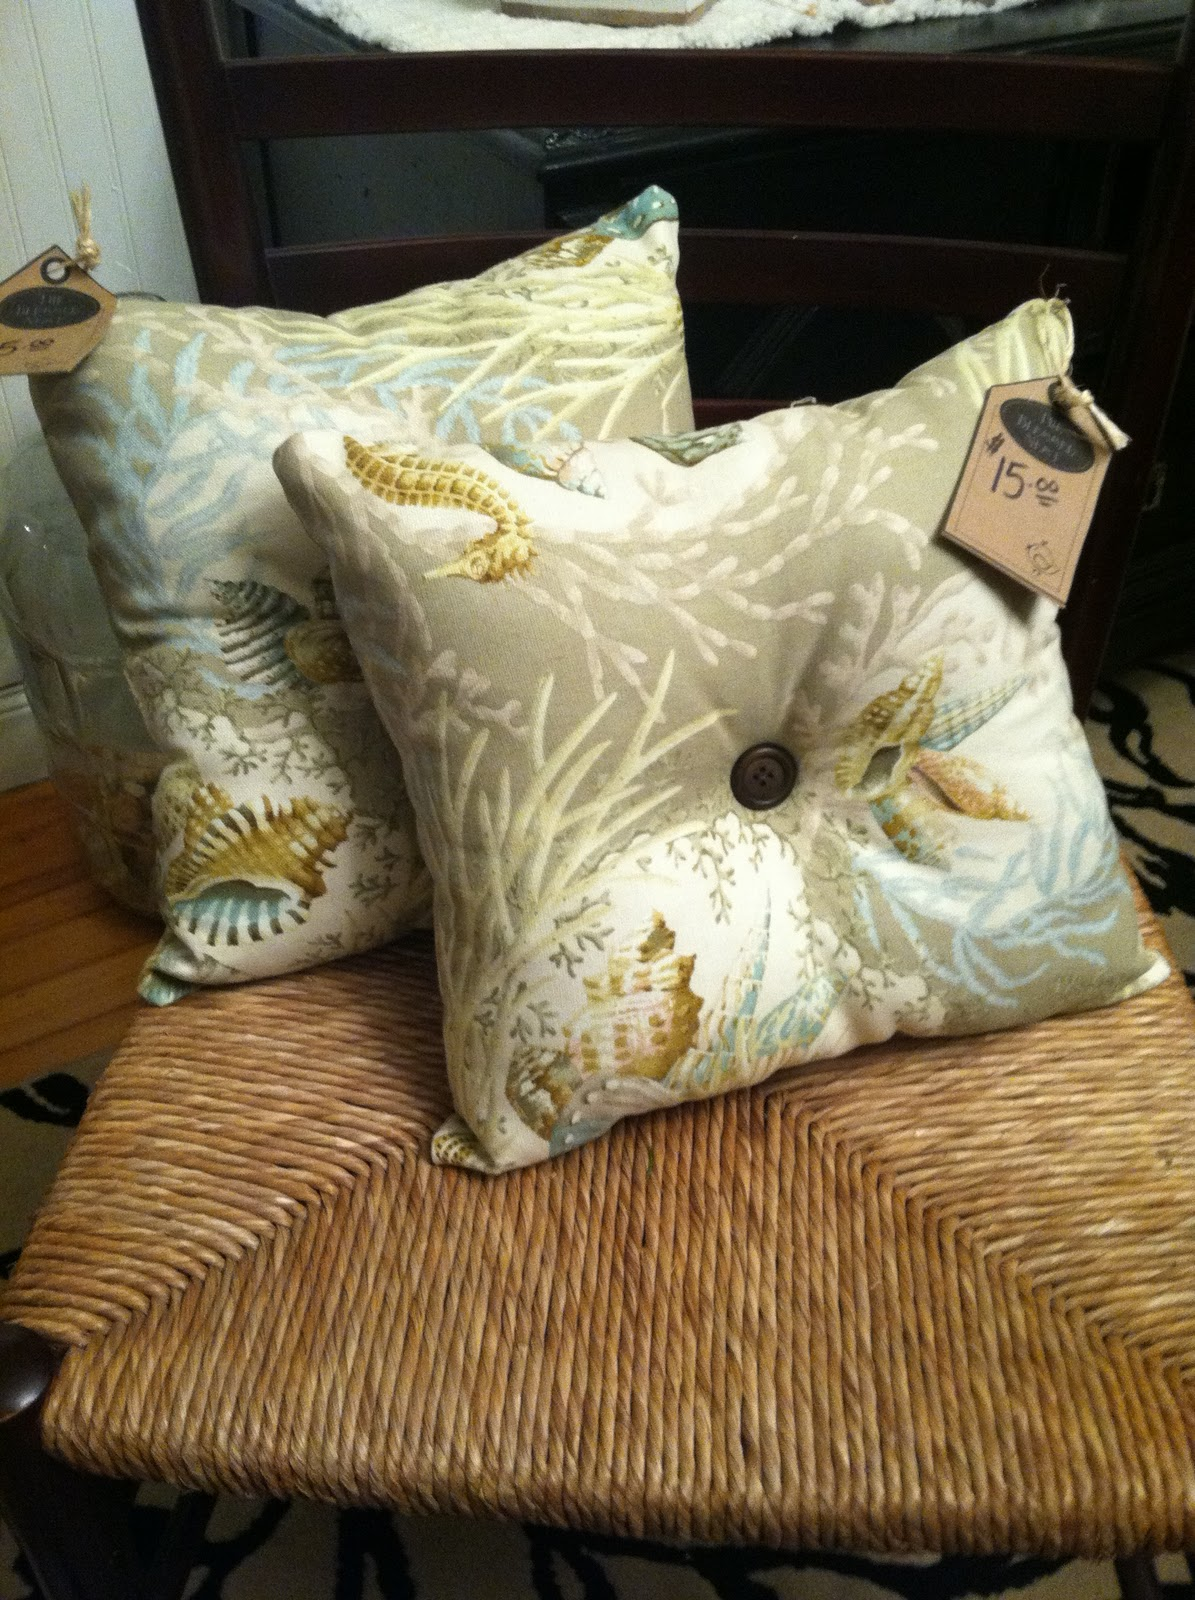 Decorative Pillows Homemade : The Blessed Nest: Currently For Sale: Homemade Pillows!